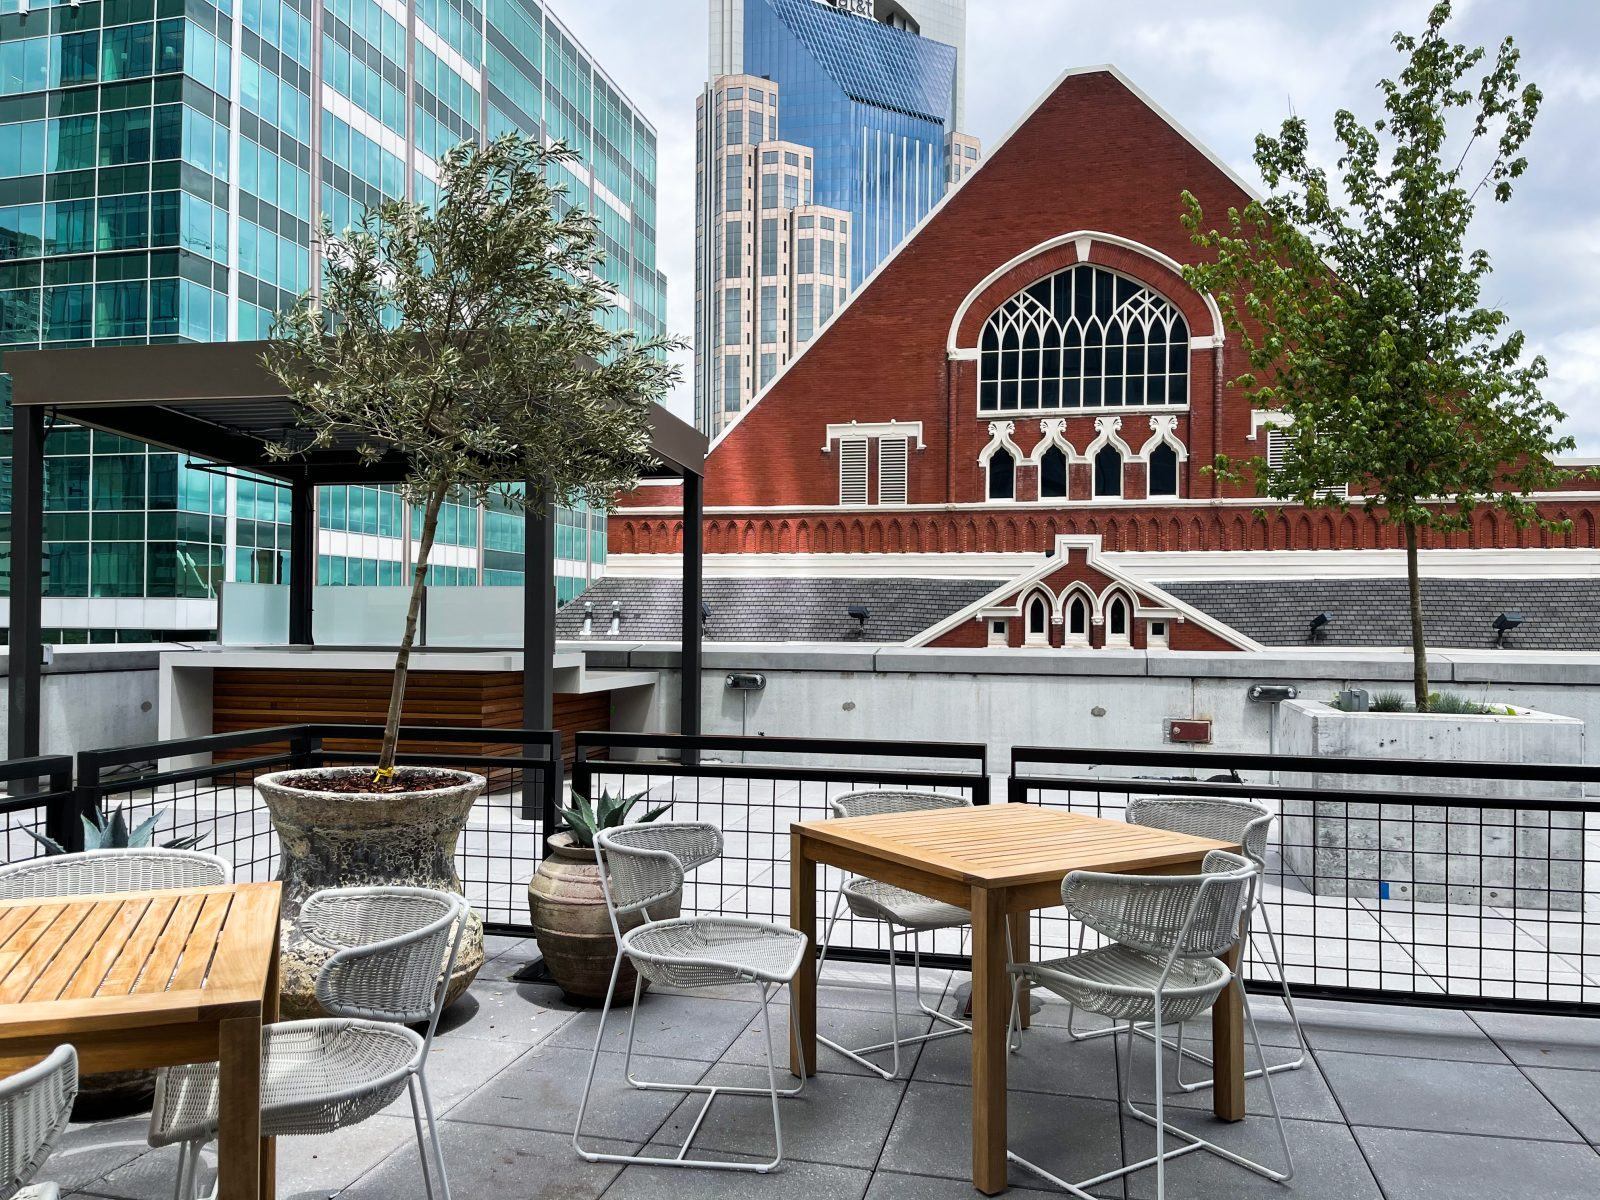 The Sixty Vines rooftop patio next to the Ryman Auditorium in downtown Nashville